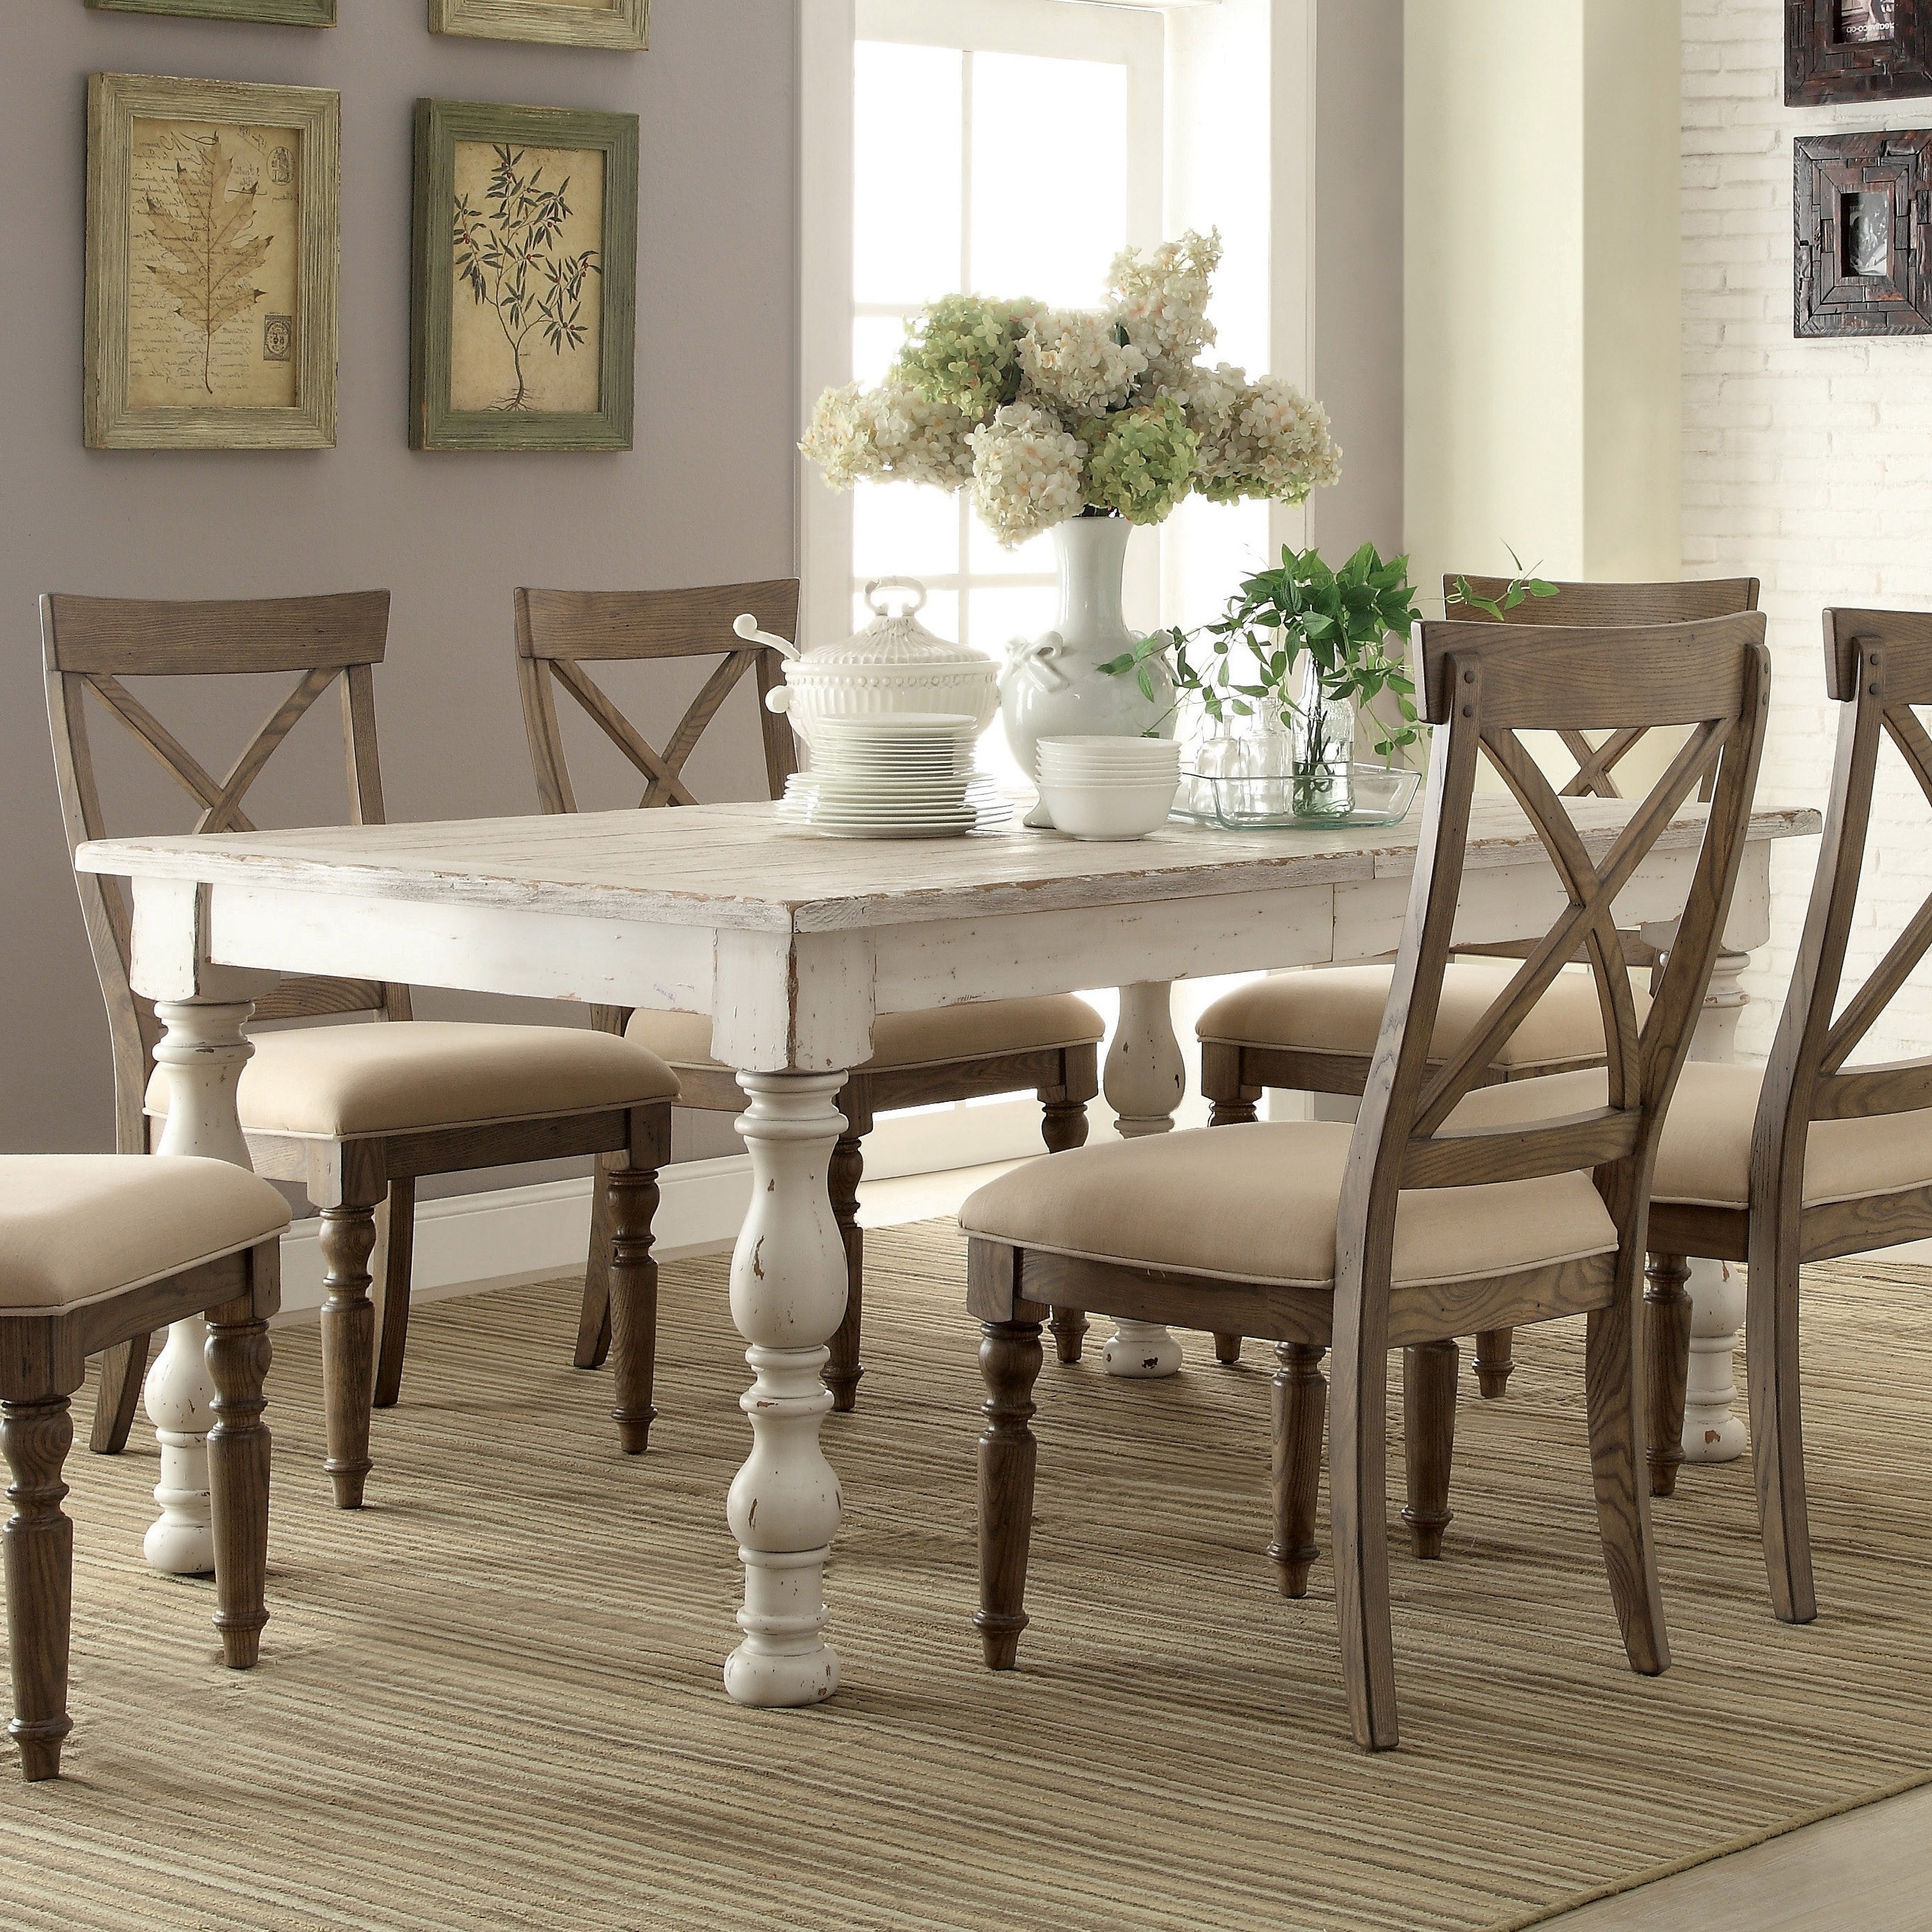 Newest Aberdeen Wood Rectangular Dining Table In Weathered Worn White With Kitchen Dining Tables And Chairs (Gallery 7 of 25)